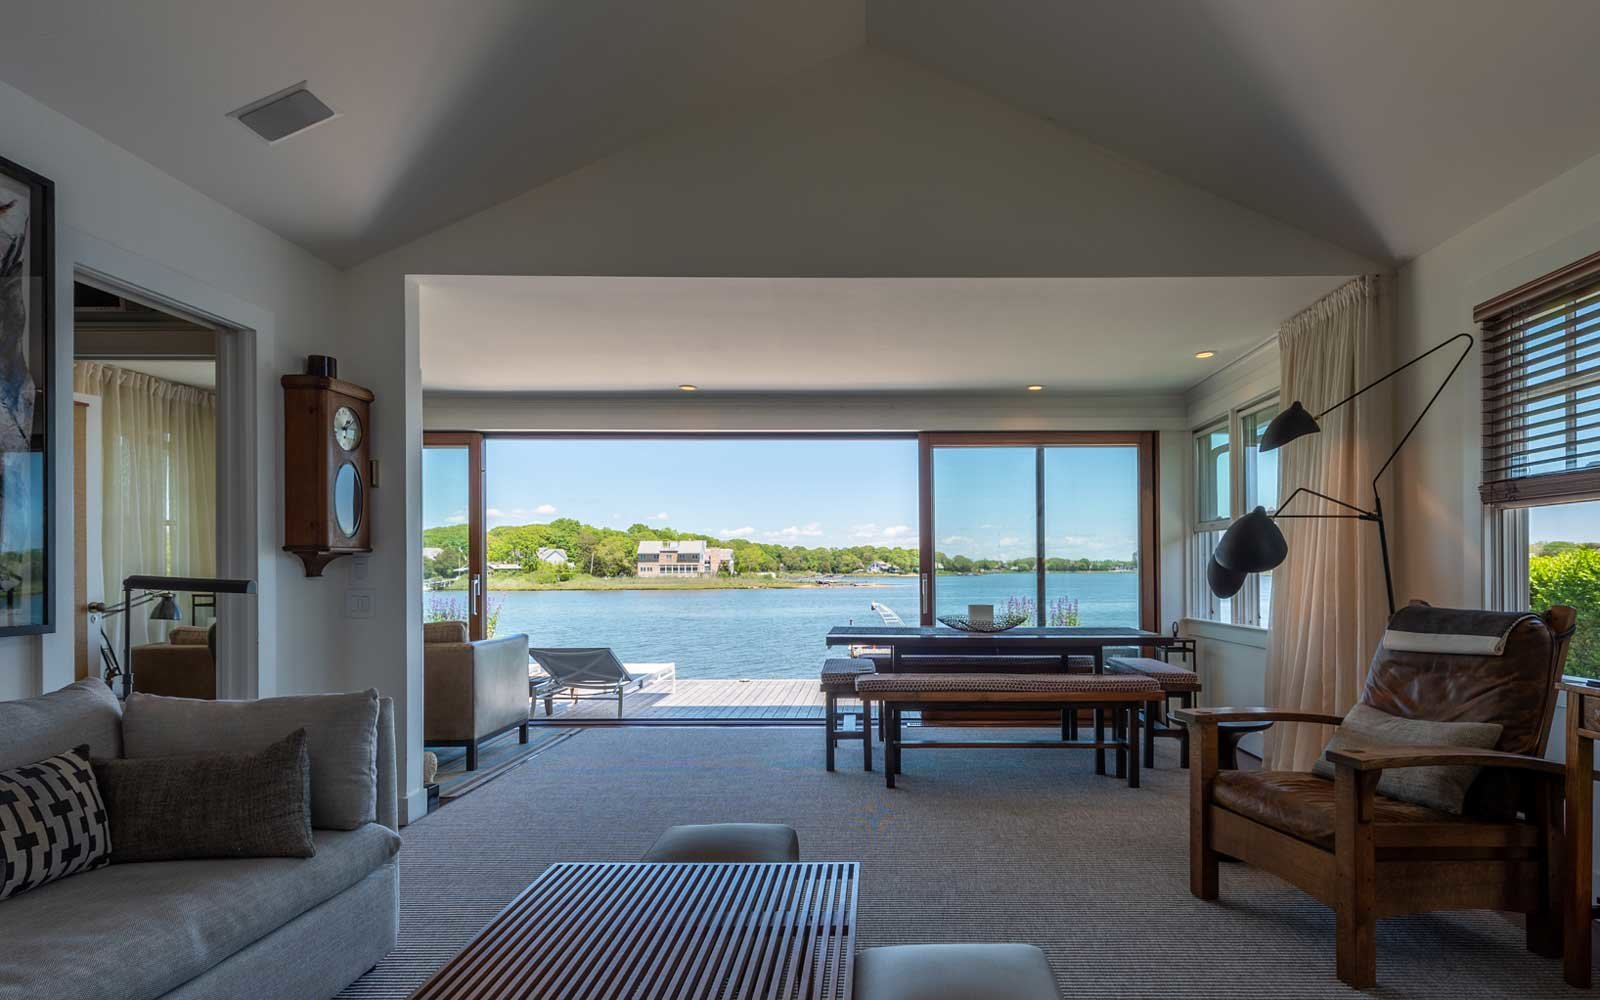 Pictured here is one of the properties featured on StayMarquis.